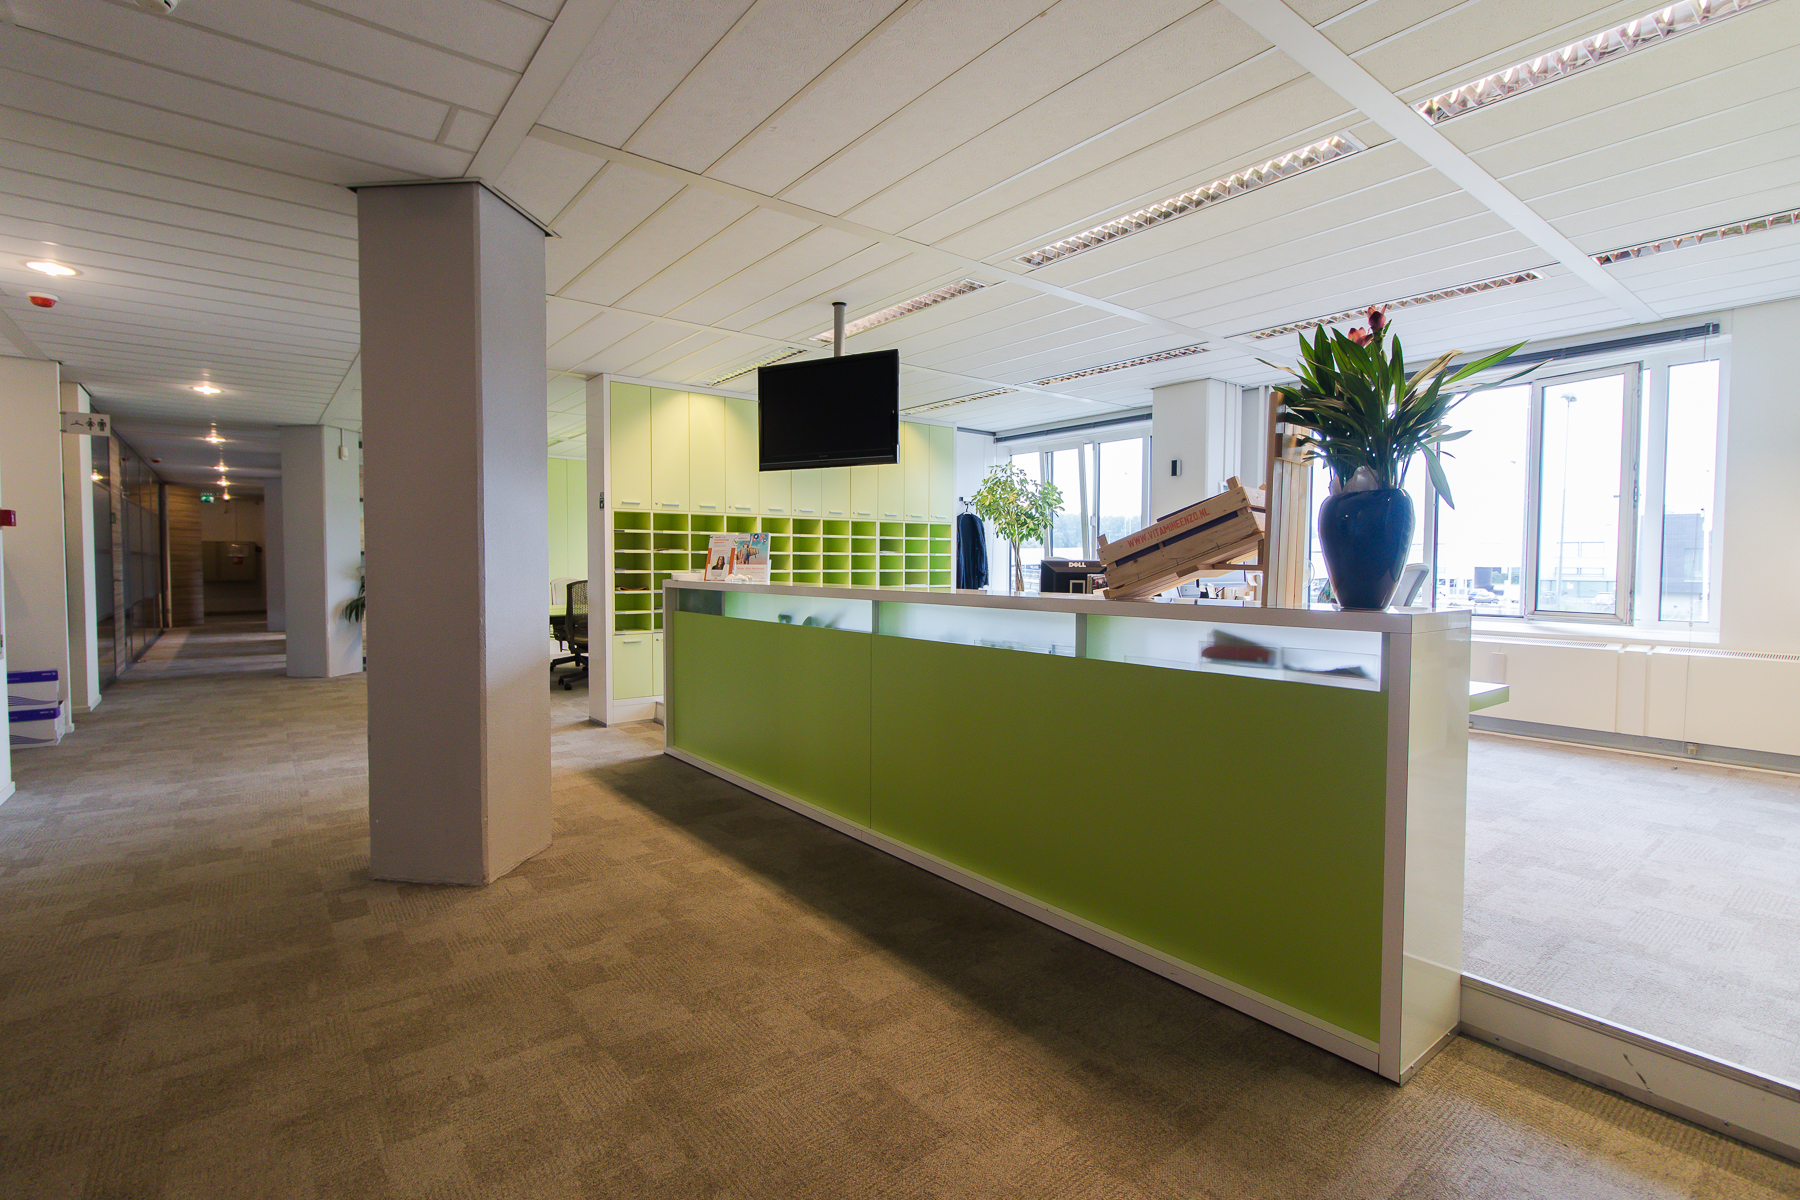 green reception desk in office building